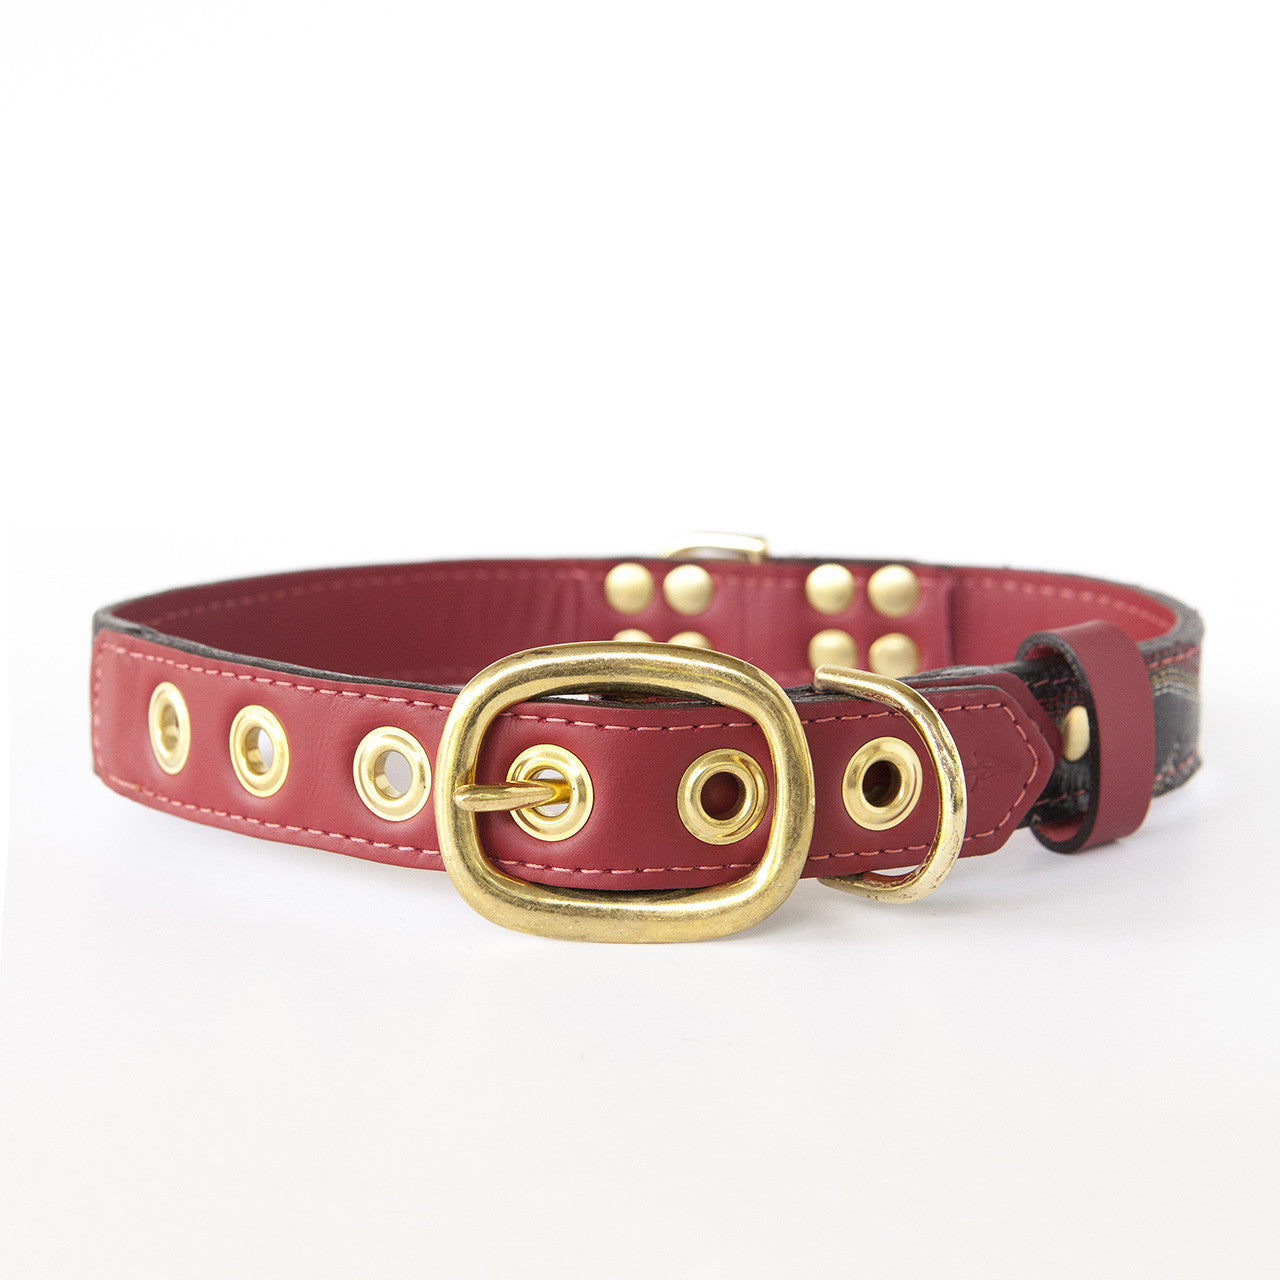 Ruby Red Dog Collar with Black Leather + Multicolored Stitching (back view)